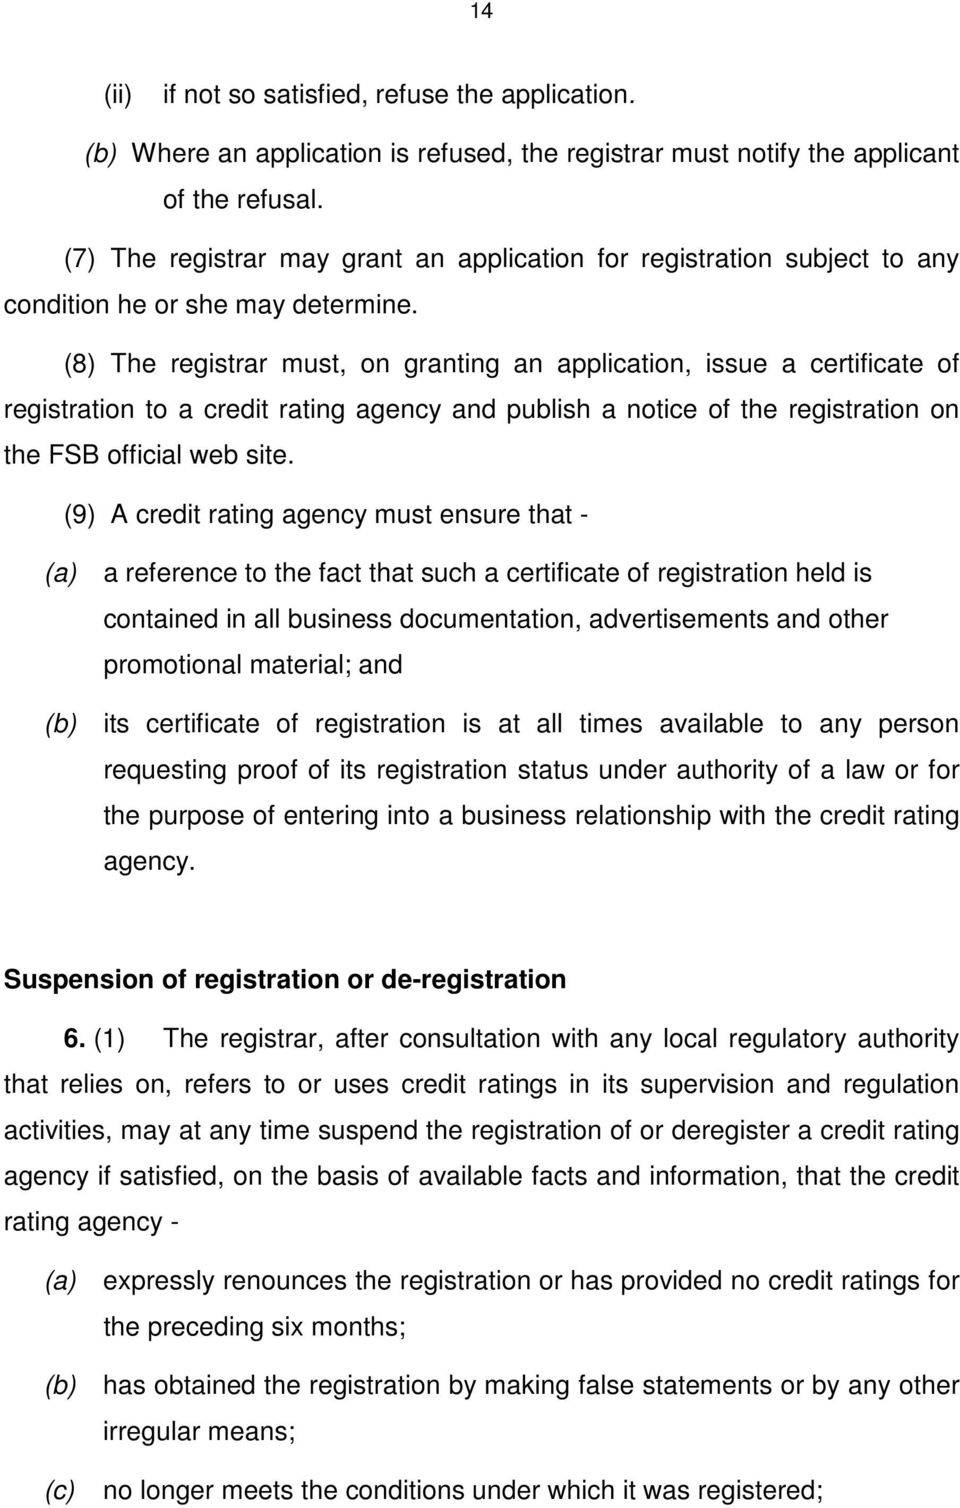 (8) The registrar must, on granting an application, issue a certificate of registration to a credit rating agency and publish a notice of the registration on the FSB official web site.